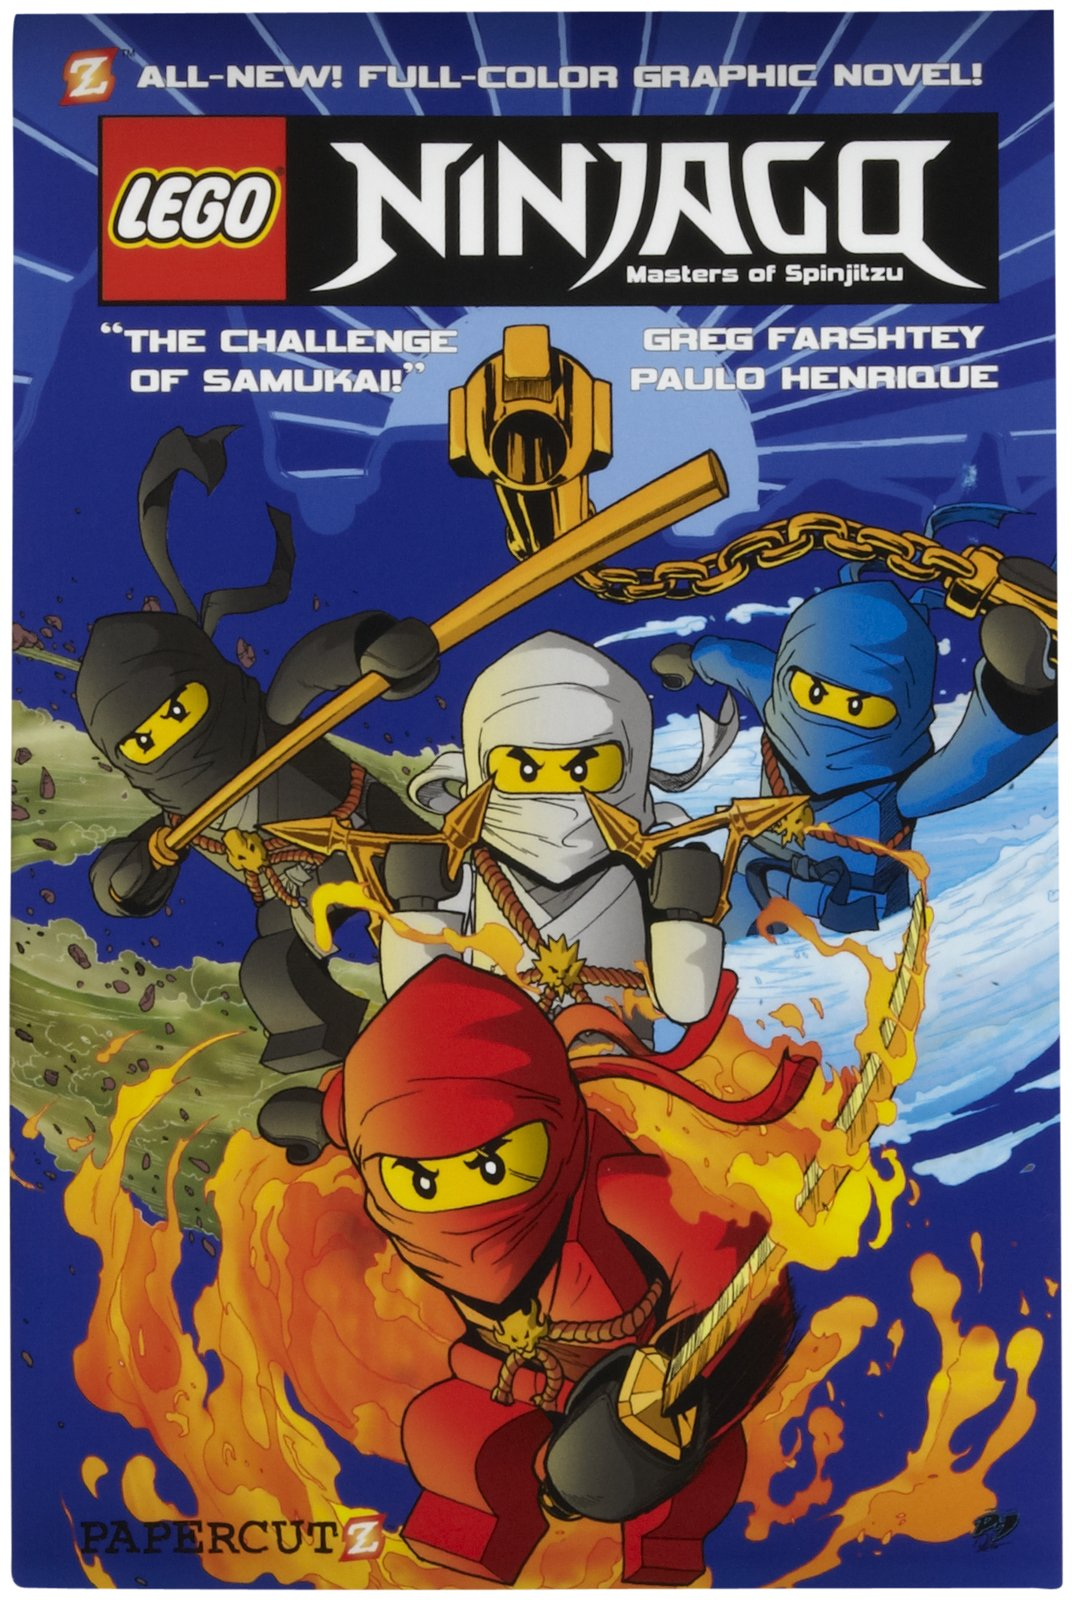 All About Bricks: Review: Ninjago Graphic Novels #1 & #2